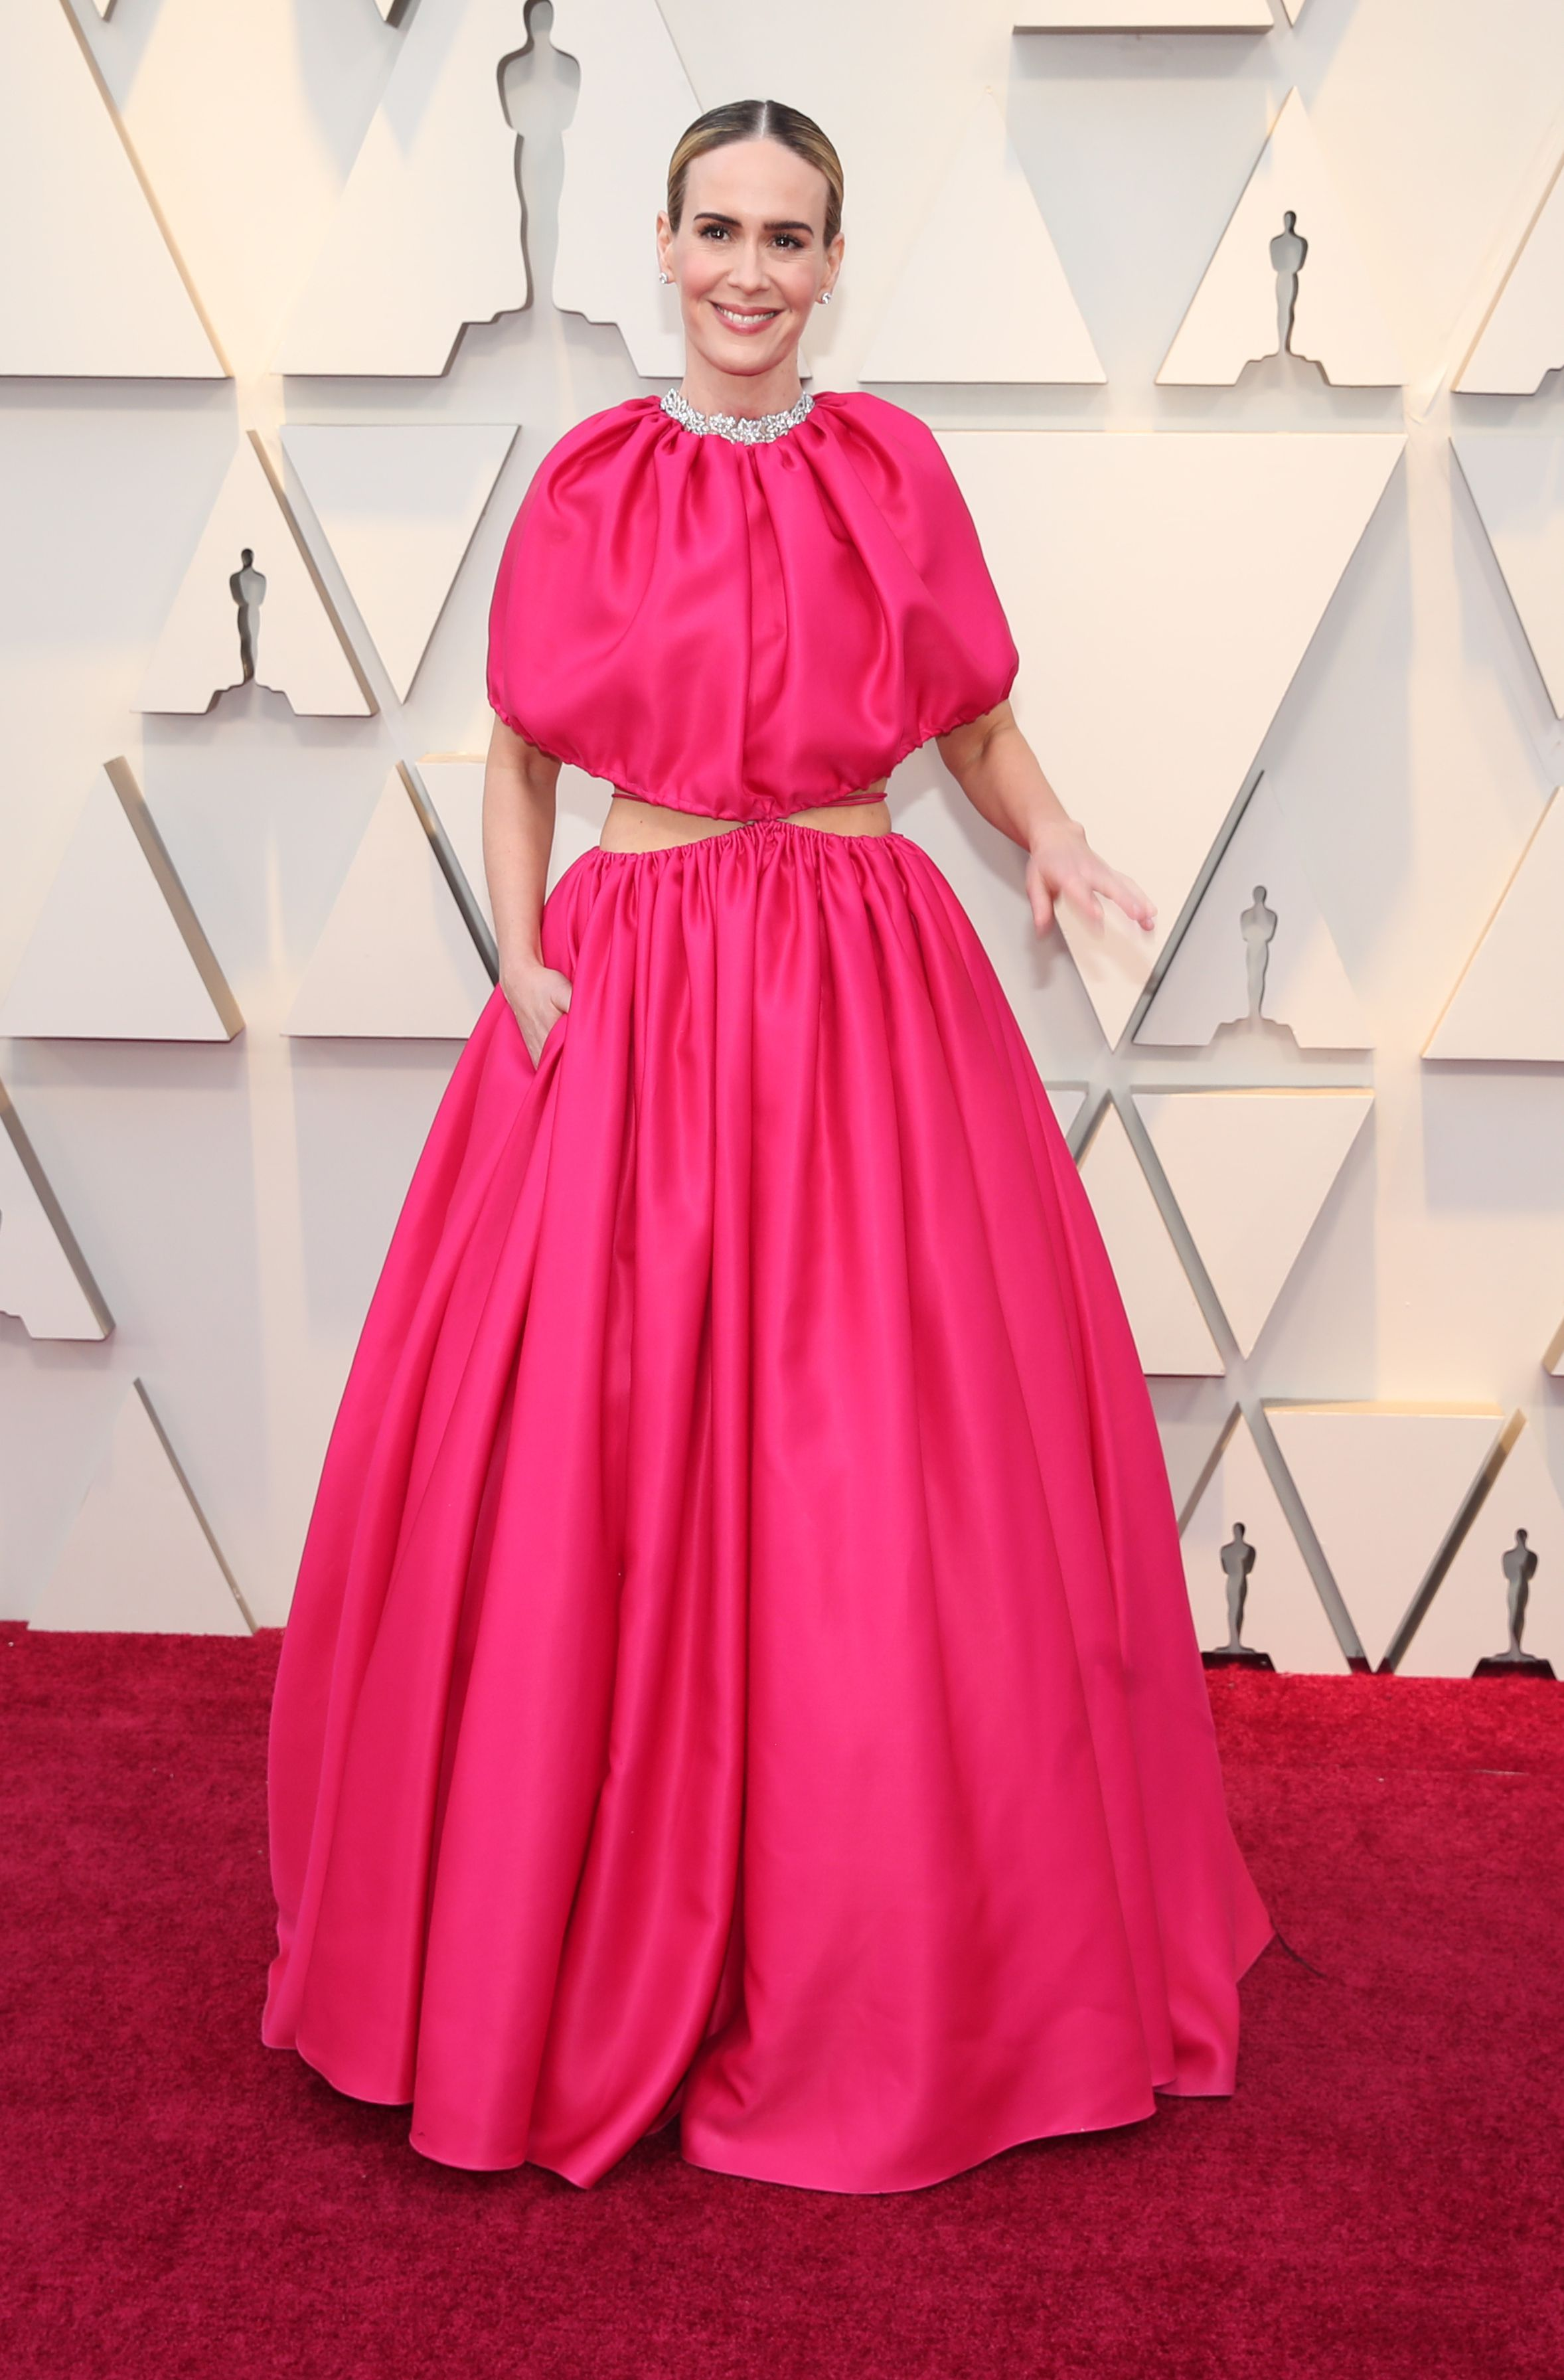 Mandatory Credit: Photo by Christopher Polk/REX/Shutterstock (10113255jq) Sarah Paulson 91st Annual Academy Awards, Arrivals, Los Angeles, USA - 24 Feb 2019